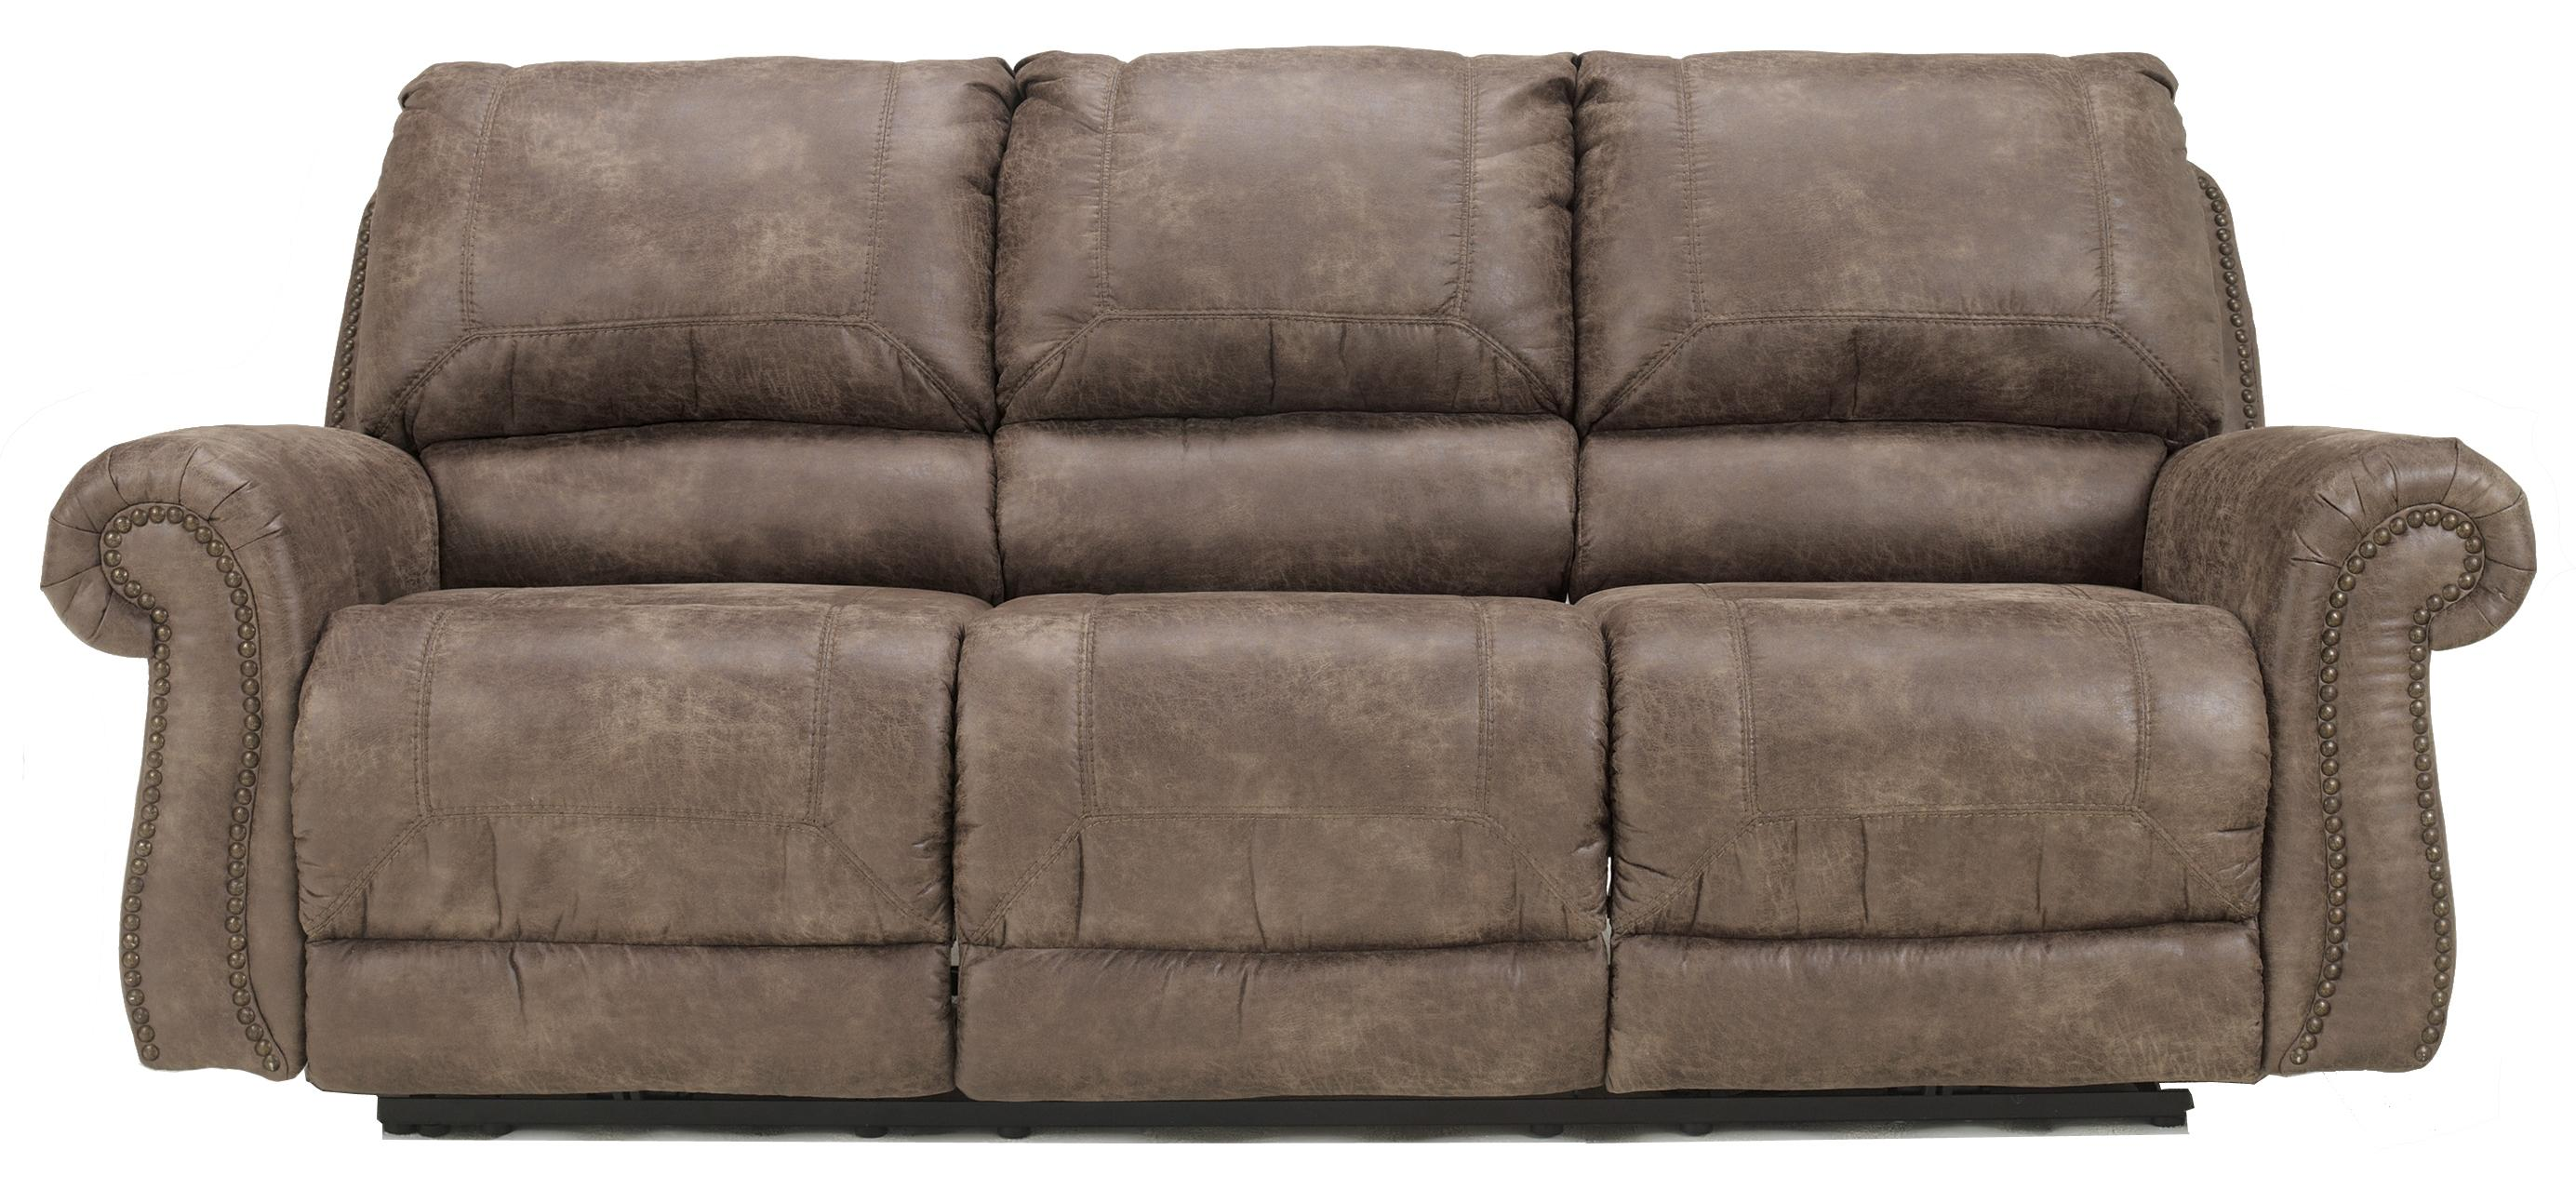 Ashley Signature Design Oberson Gunsmoke 7410087 Reclining Power Sofa With Rolled Arms Nail